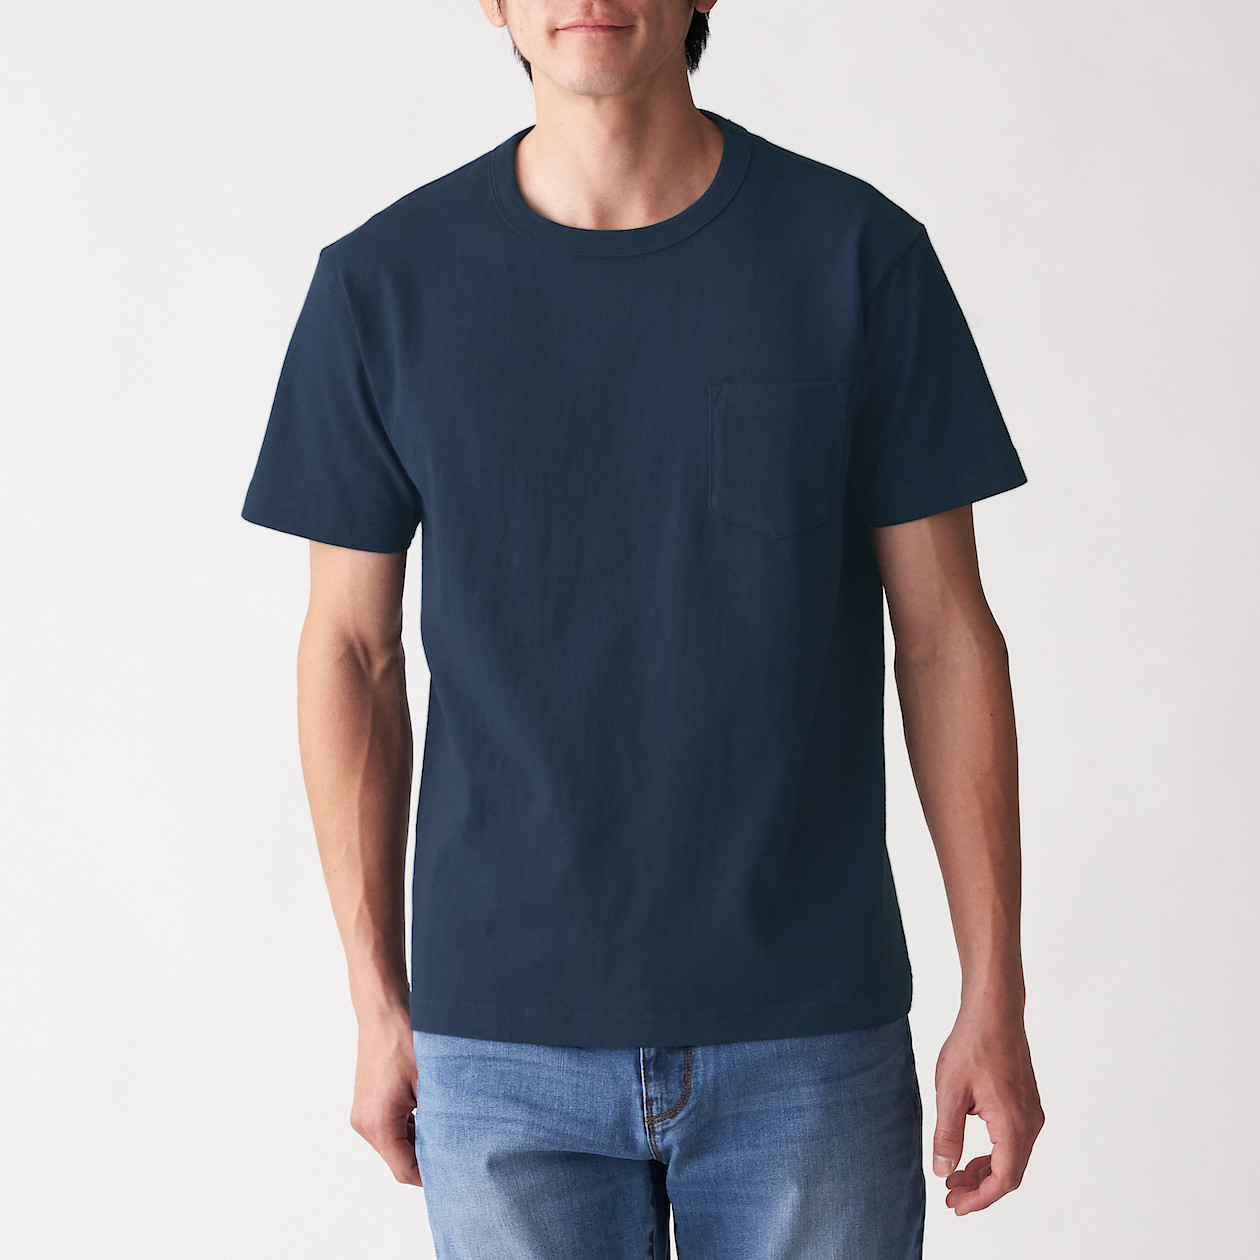 Men's Coarse Organic Cotton Short Sleeves T-Shirt With Pocket